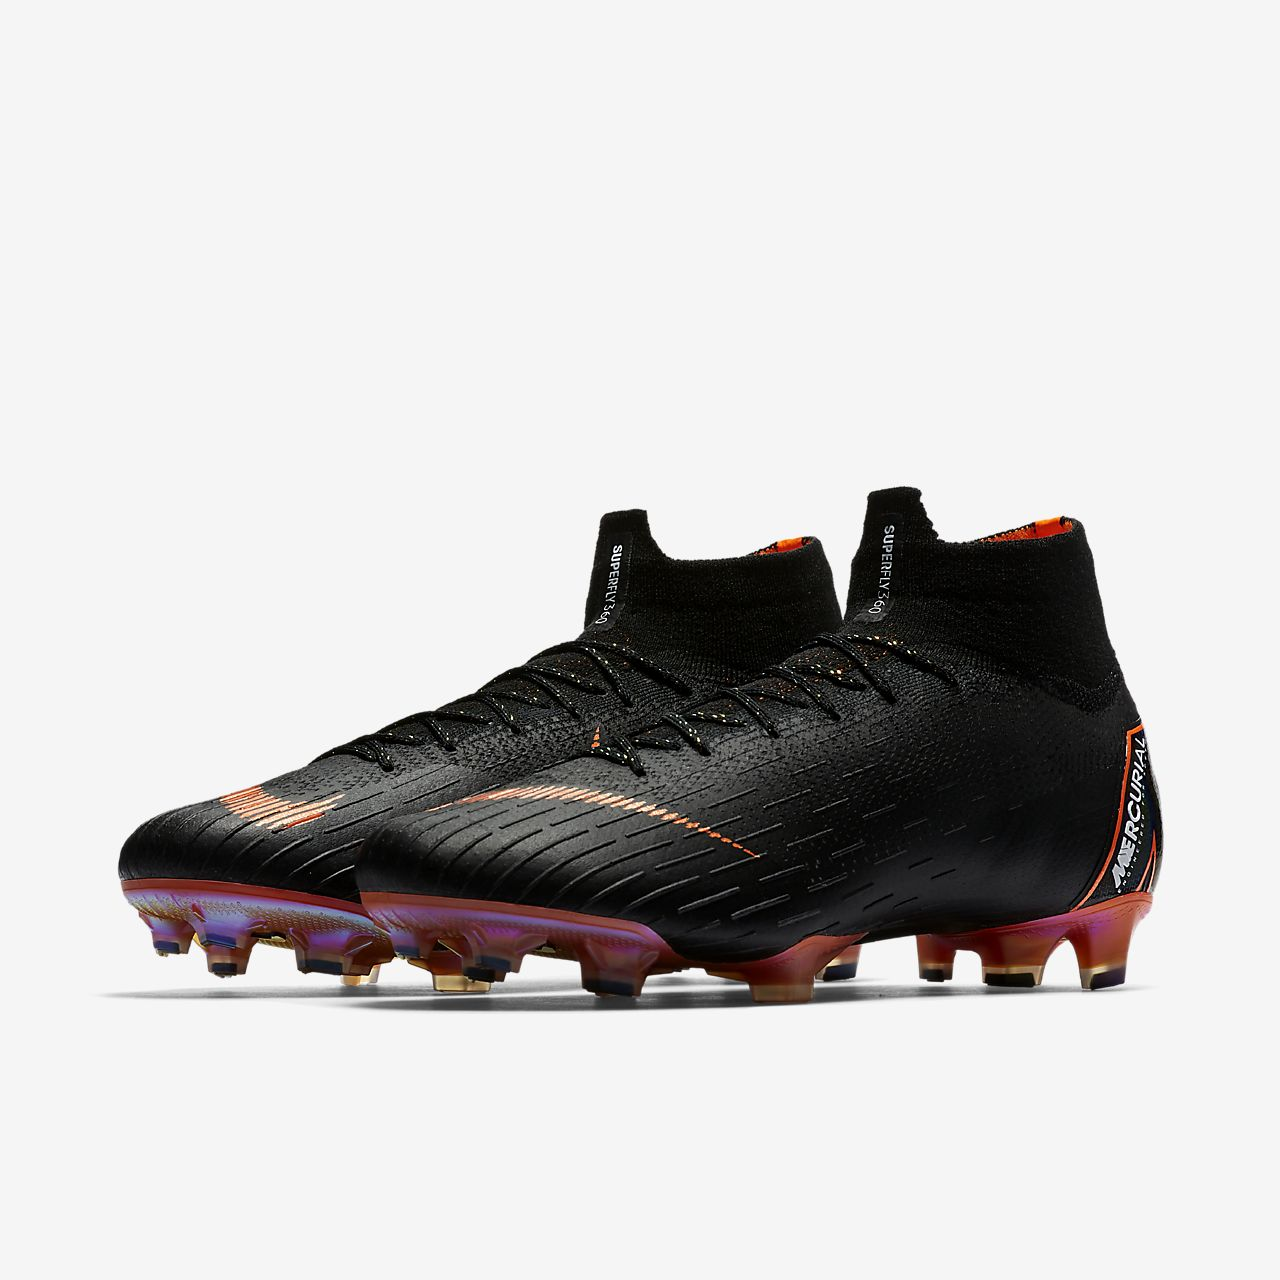 Nike Mercurial Superfly 360 Elite Firm Ground Football Boot